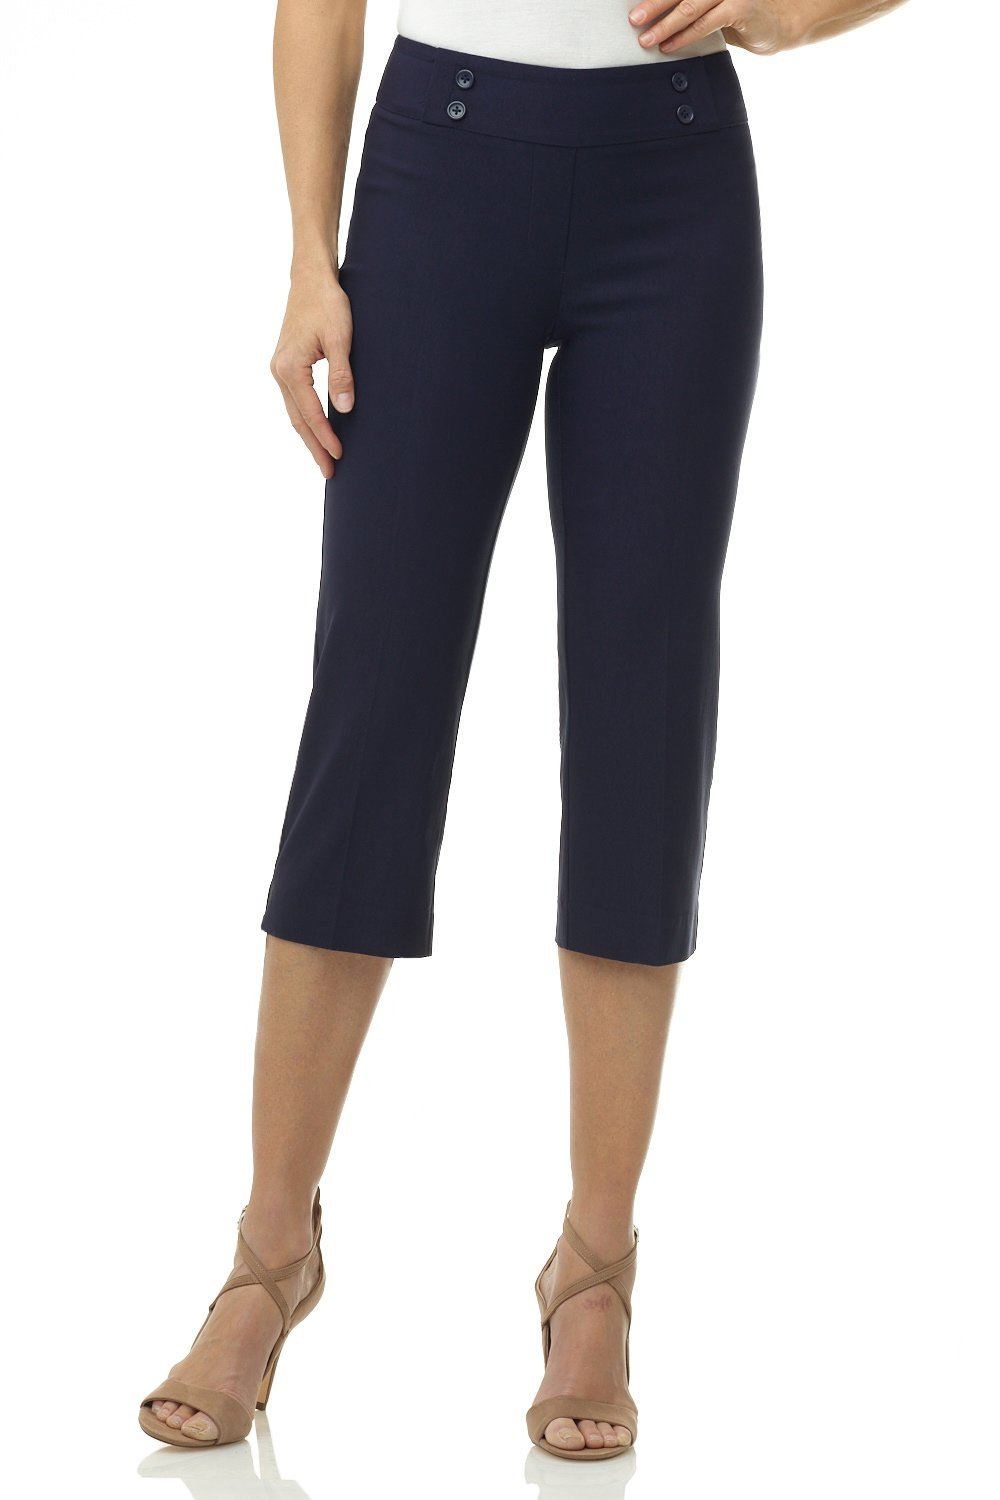 Rekucci Women's Ease in to Comfort Fit Capri with Button Detail (16,Navy)